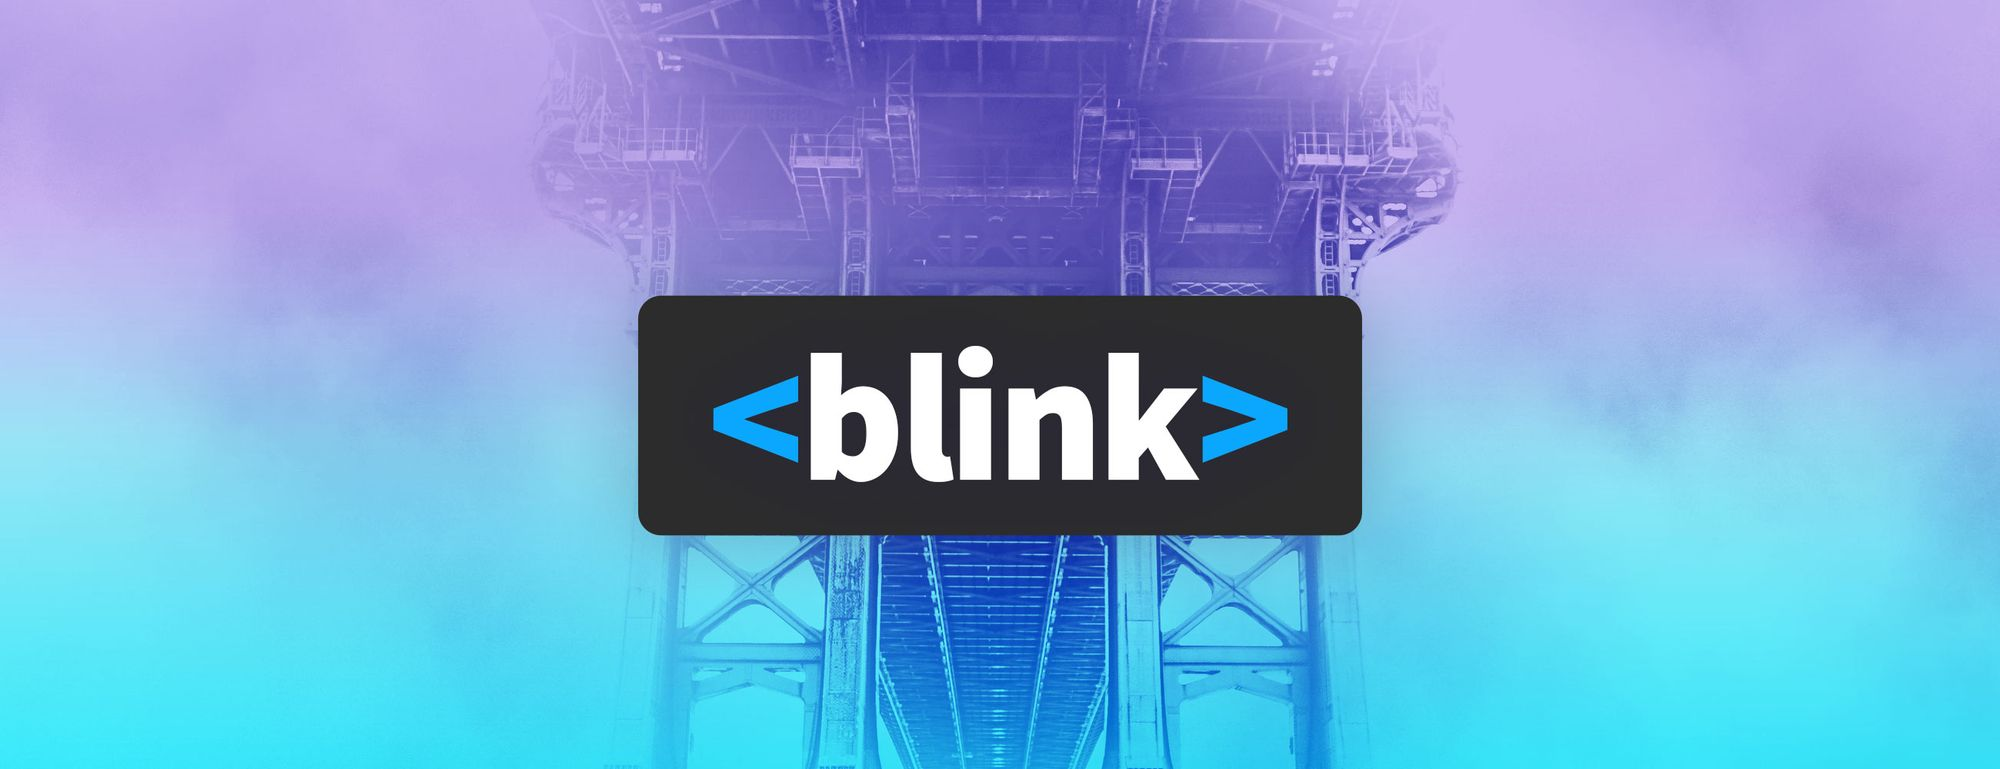 Make It Blink HTML Tutorial – How to Use the Blink Tag, with Code Examples